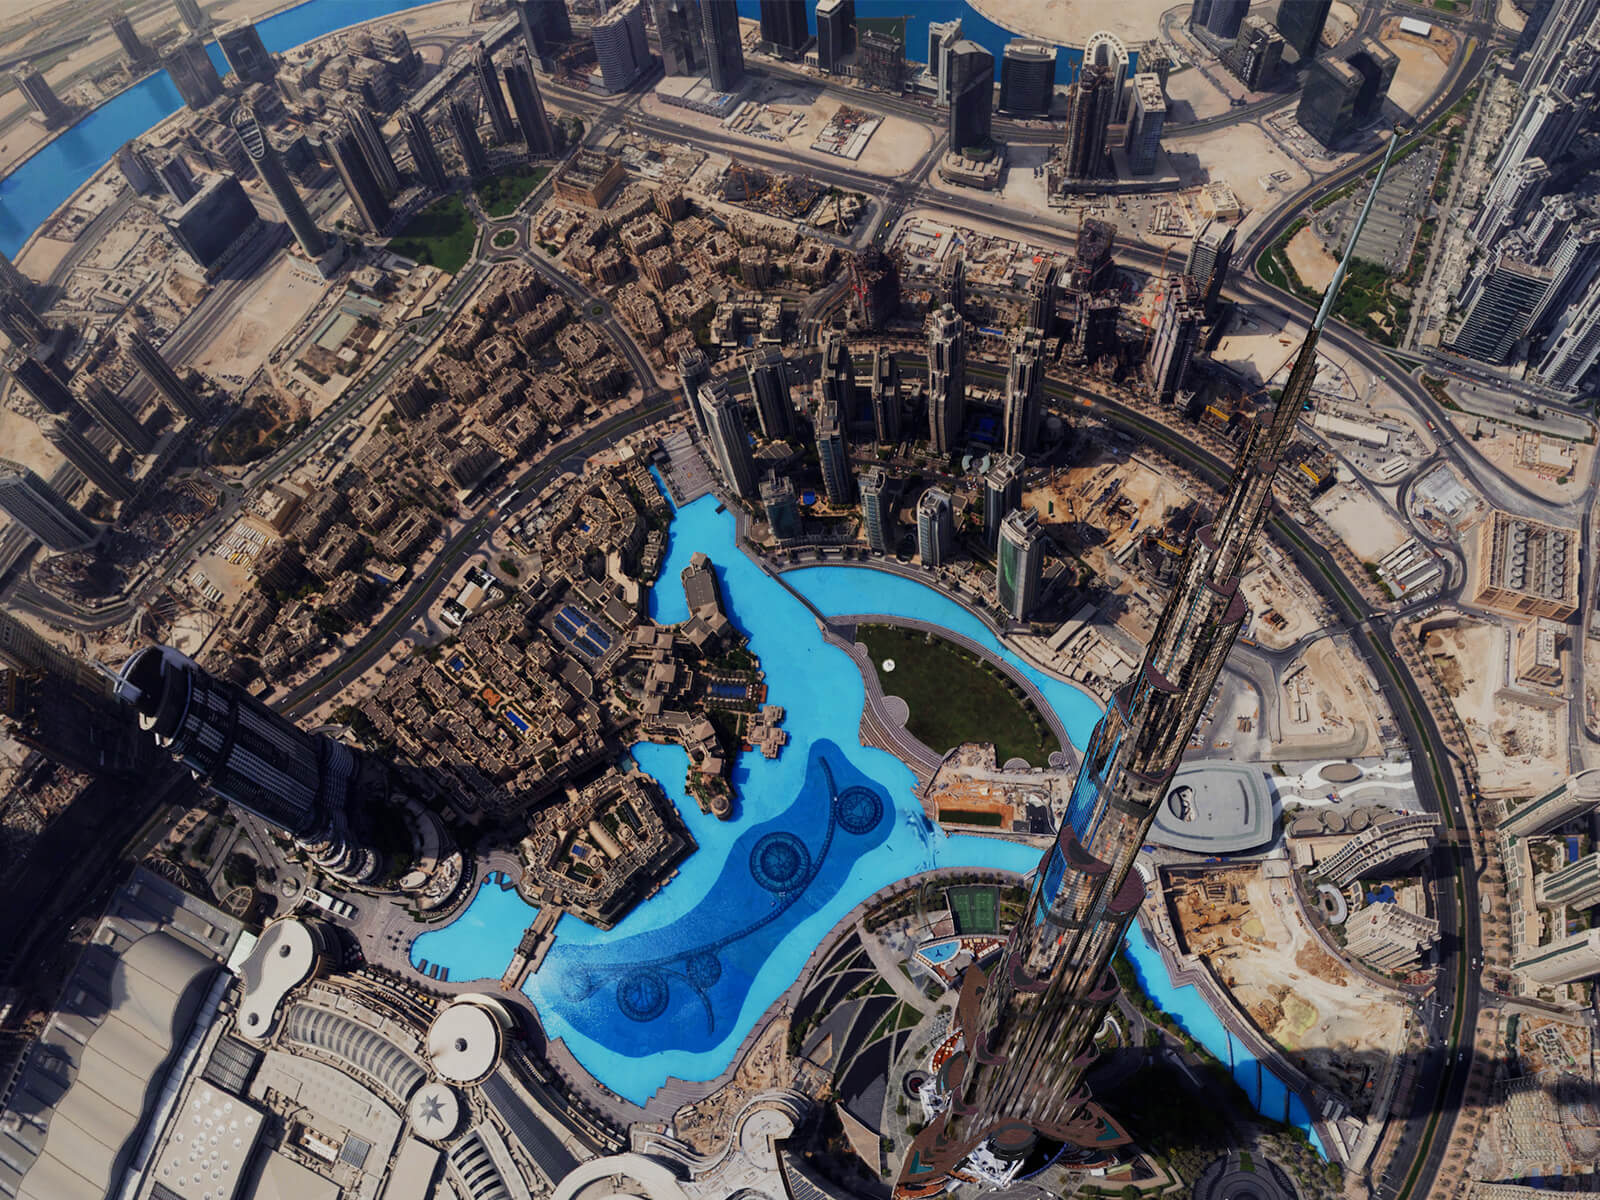 The Dubai landscape from a birds-eye view, taken from the VR title Dubai Rising Falcon.